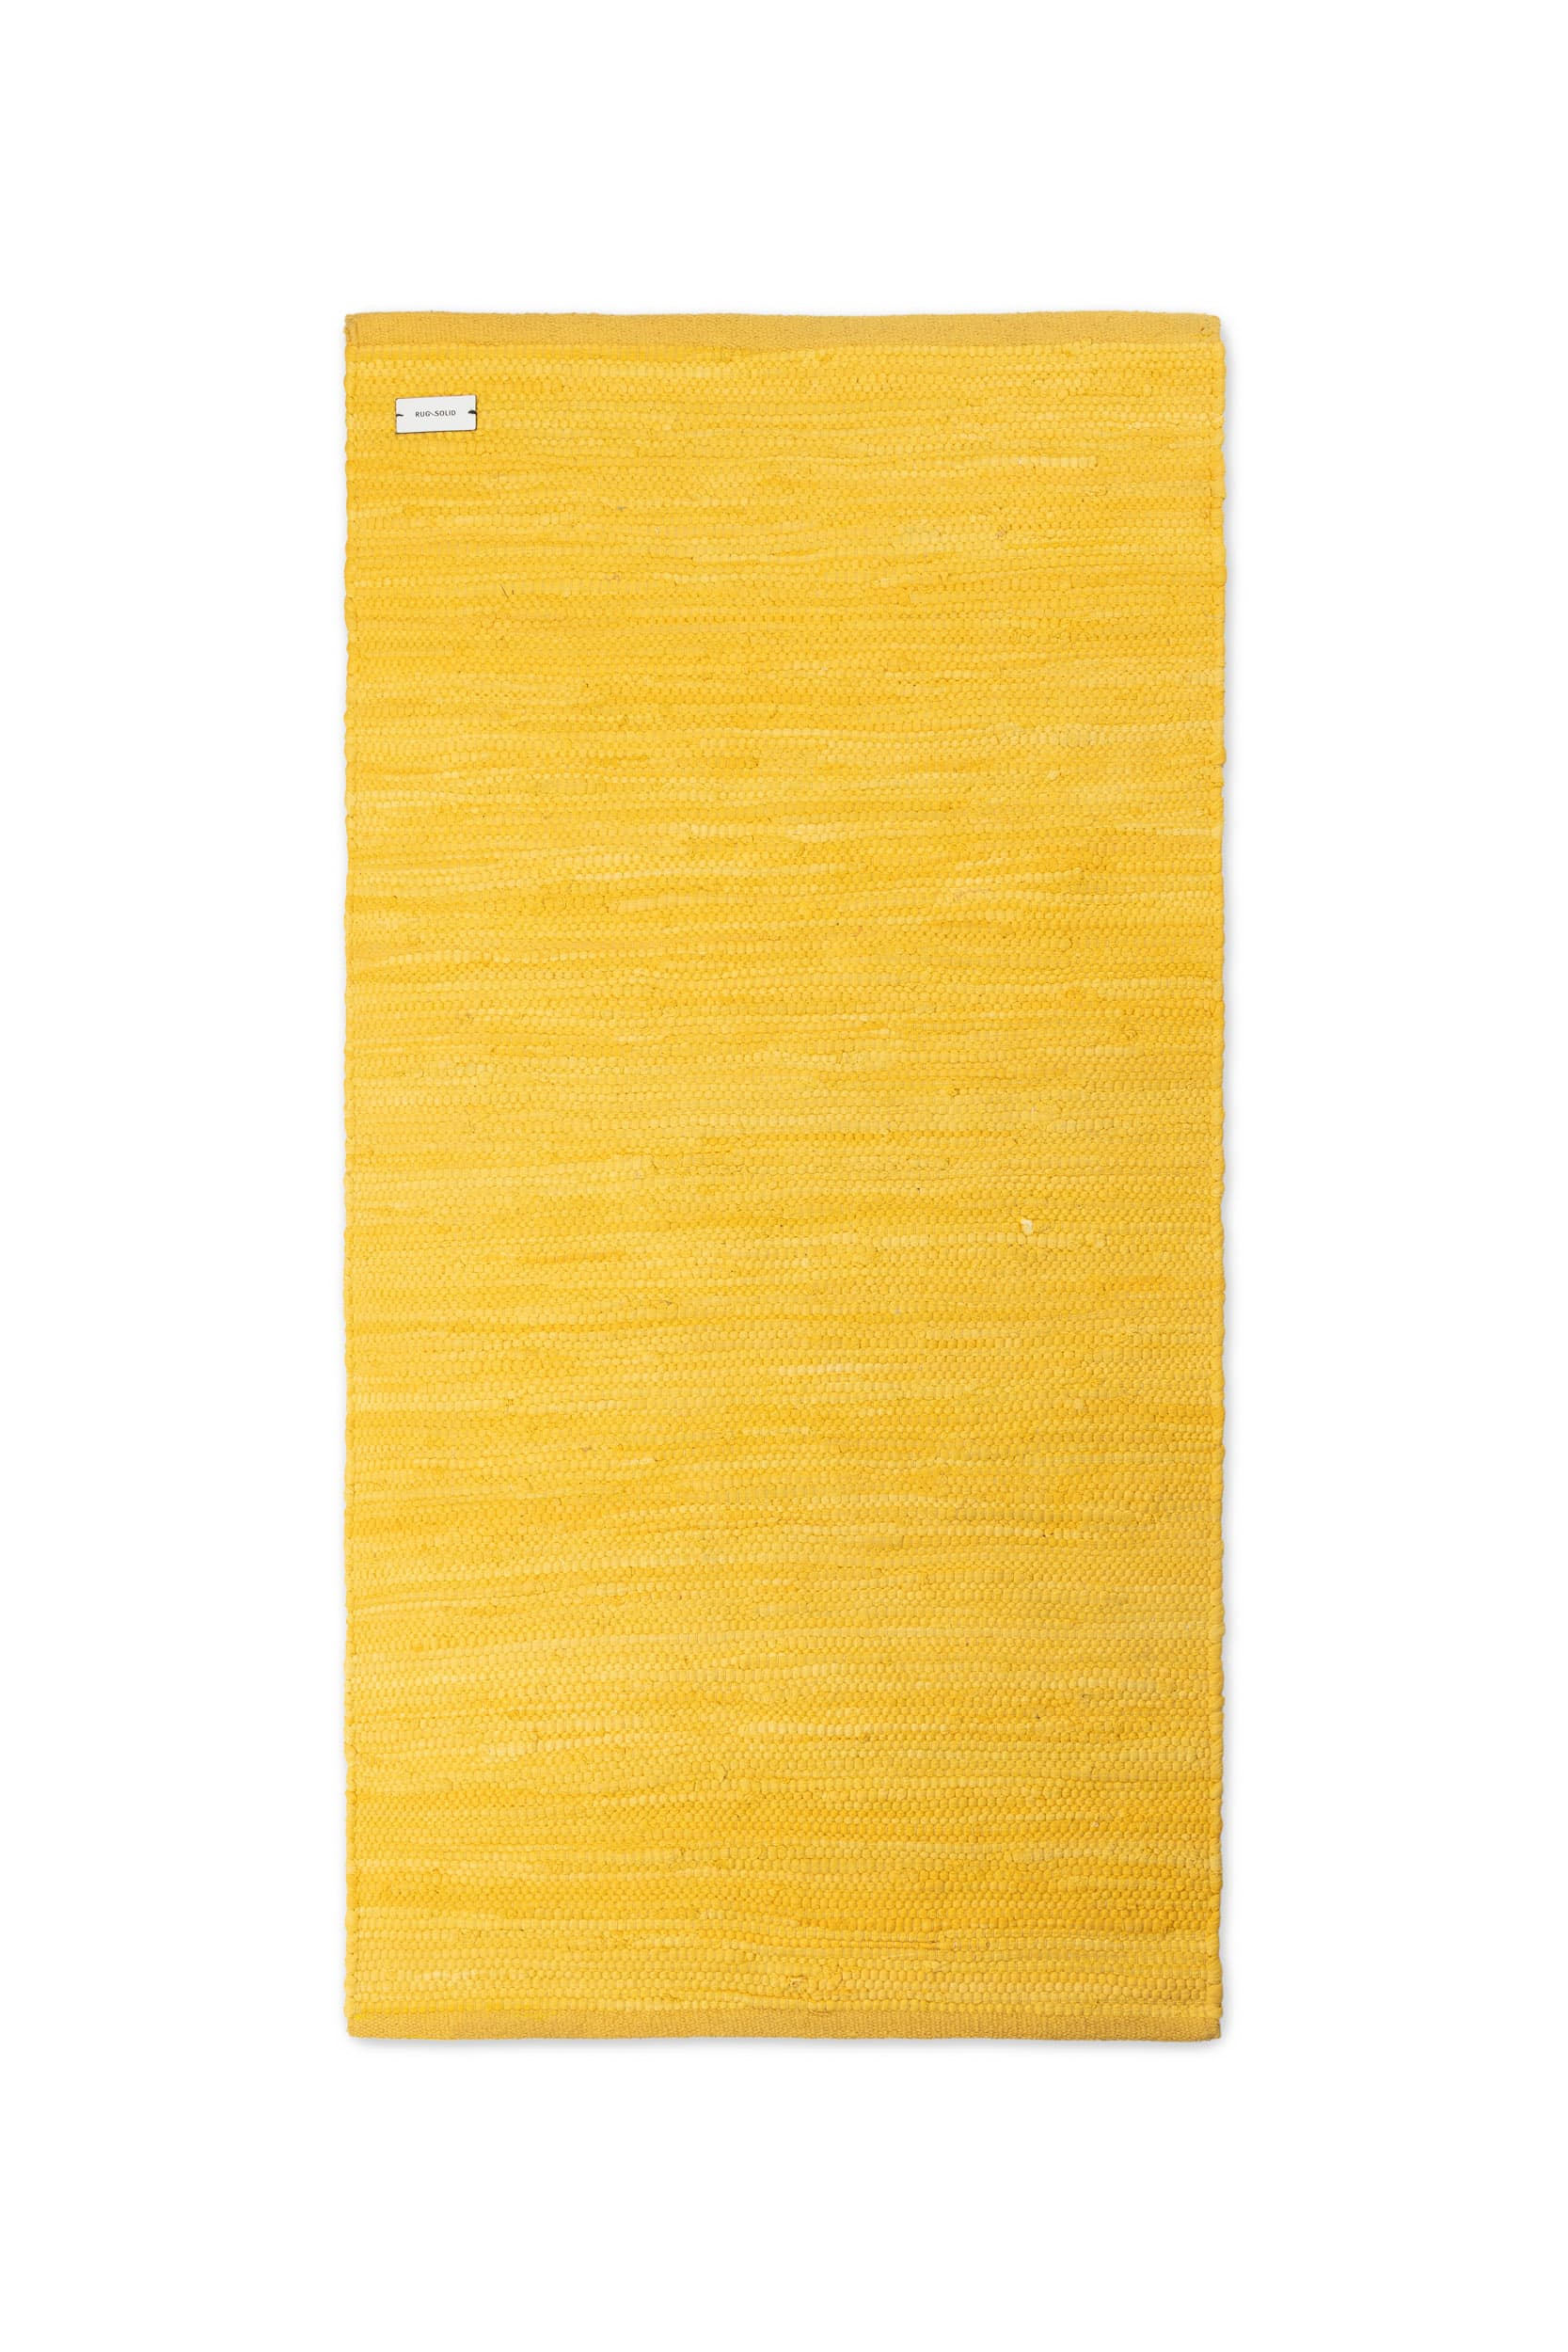 Raincoat Yellow Cotton Rug